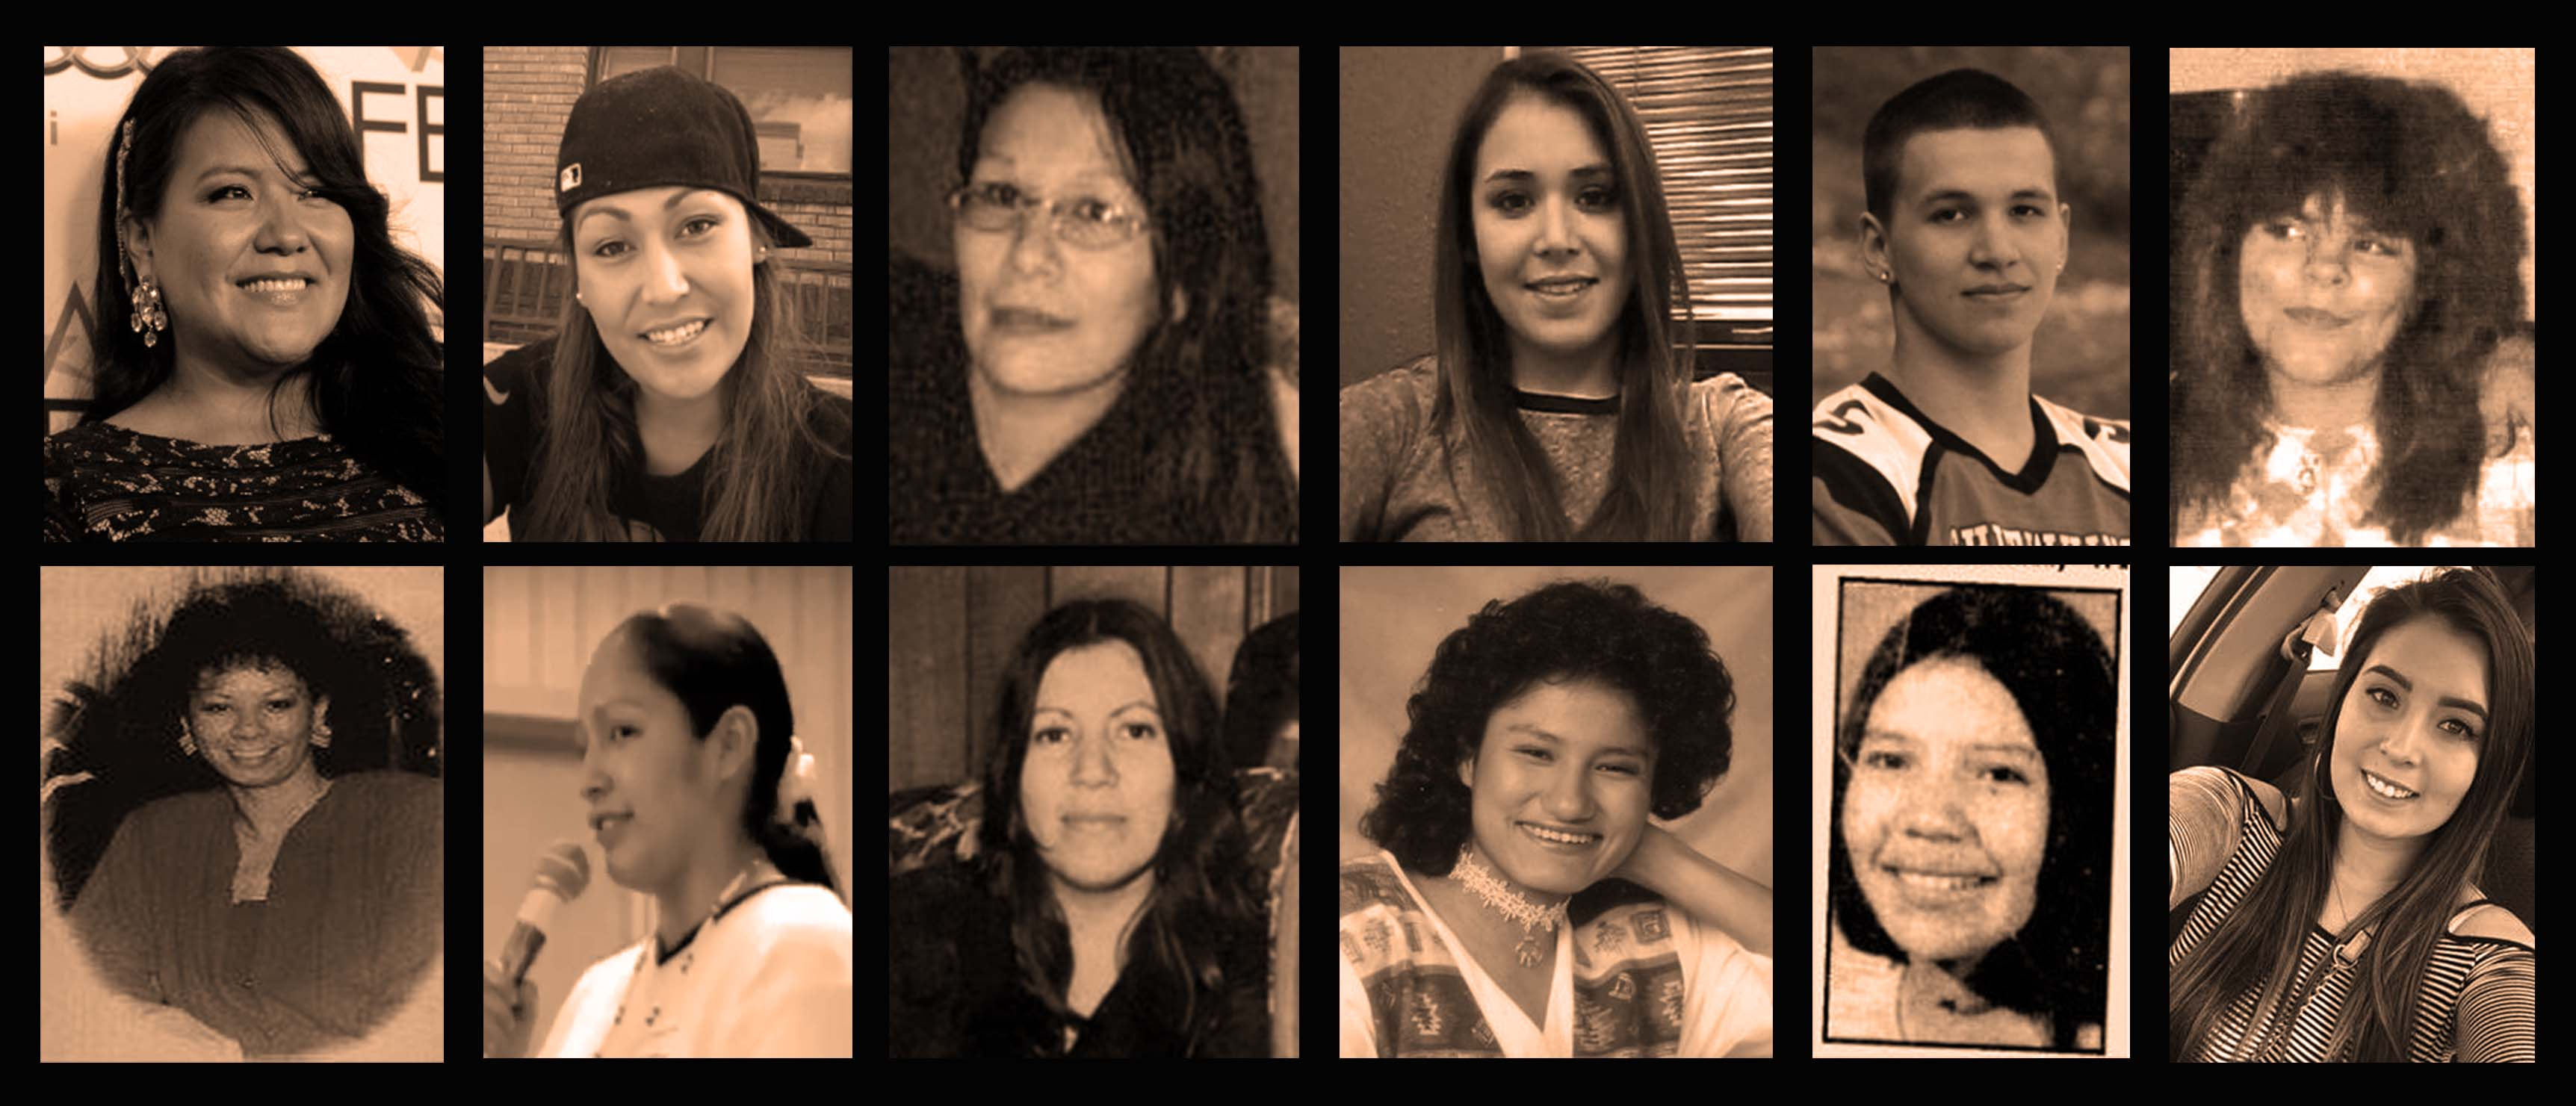 Pictures of only a handful of the missing and murdered Indigenous women, many of whom are from Standing Rock